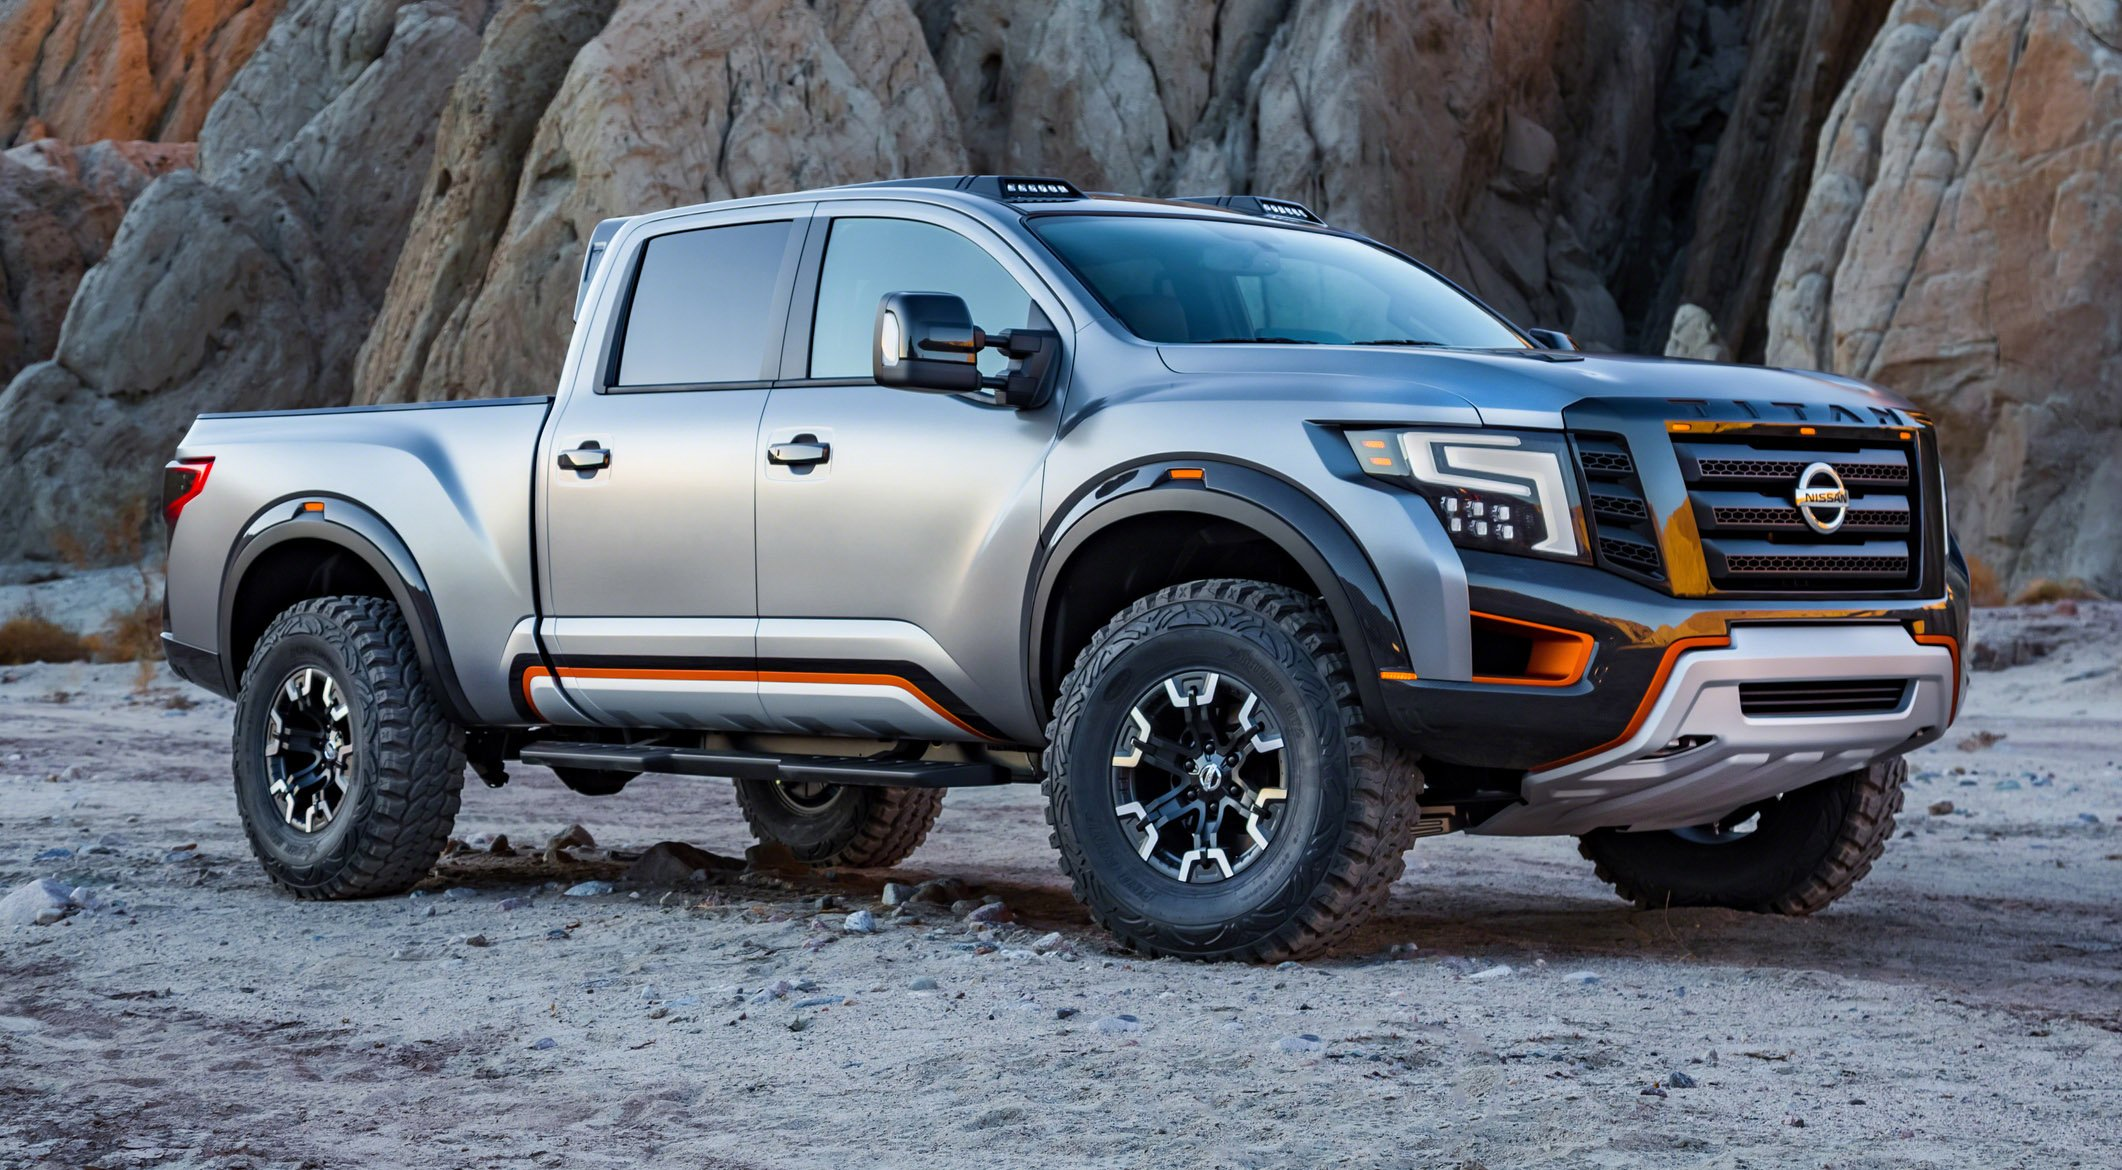 Nissan Titan Warrior Pickup Revives Baja Vibes For Detroit